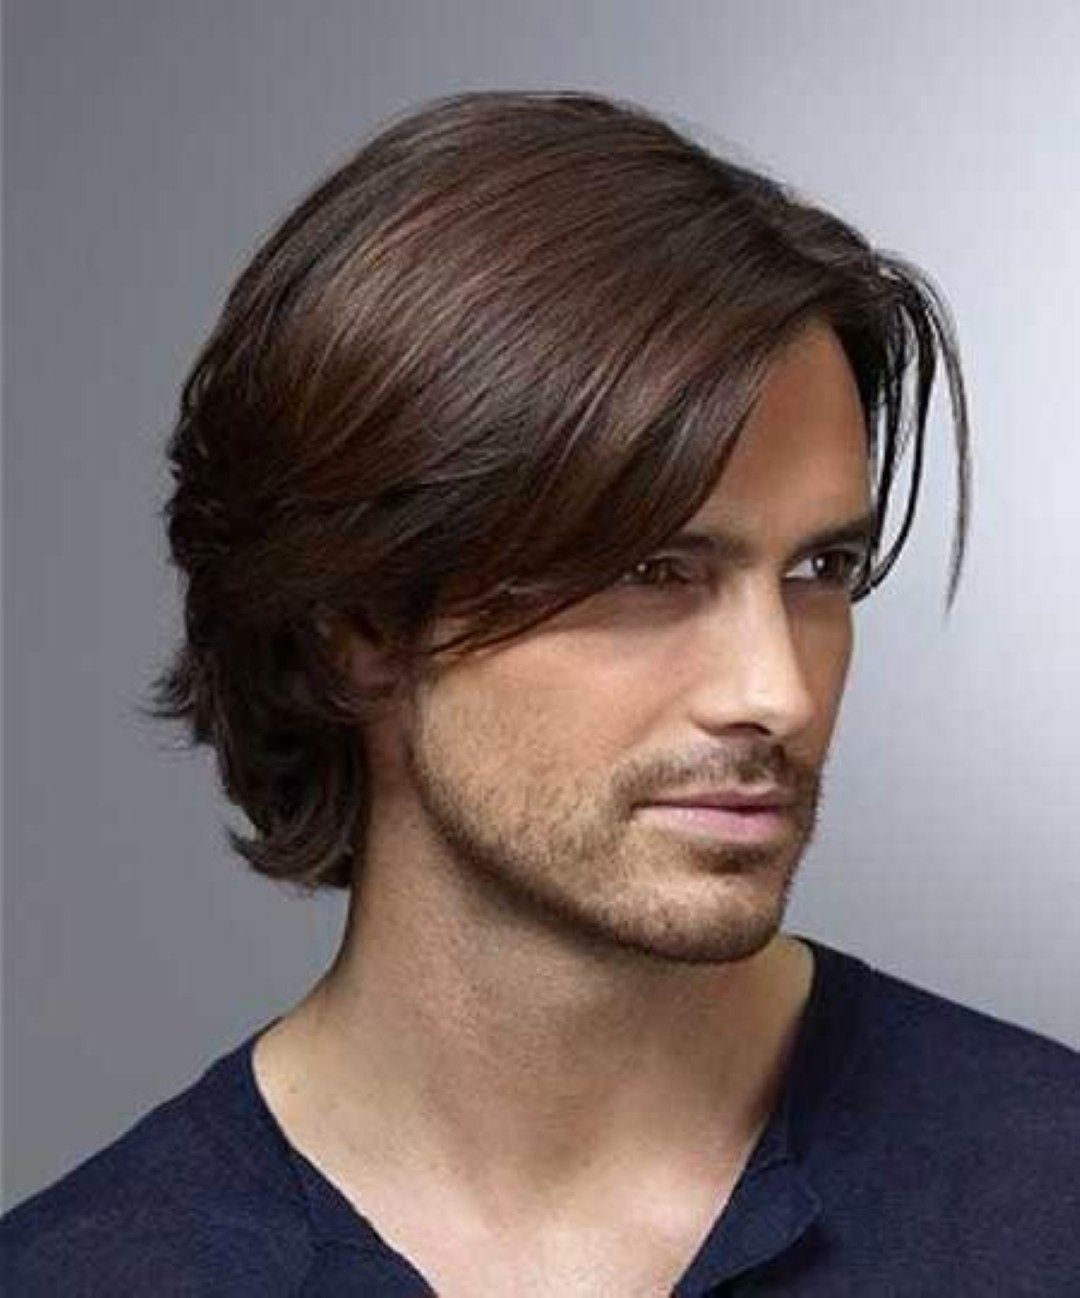 Longer Hairstyles For Men Cool Hairstyles For Men With Long Thick Hair  Hairstyle  Pinterest